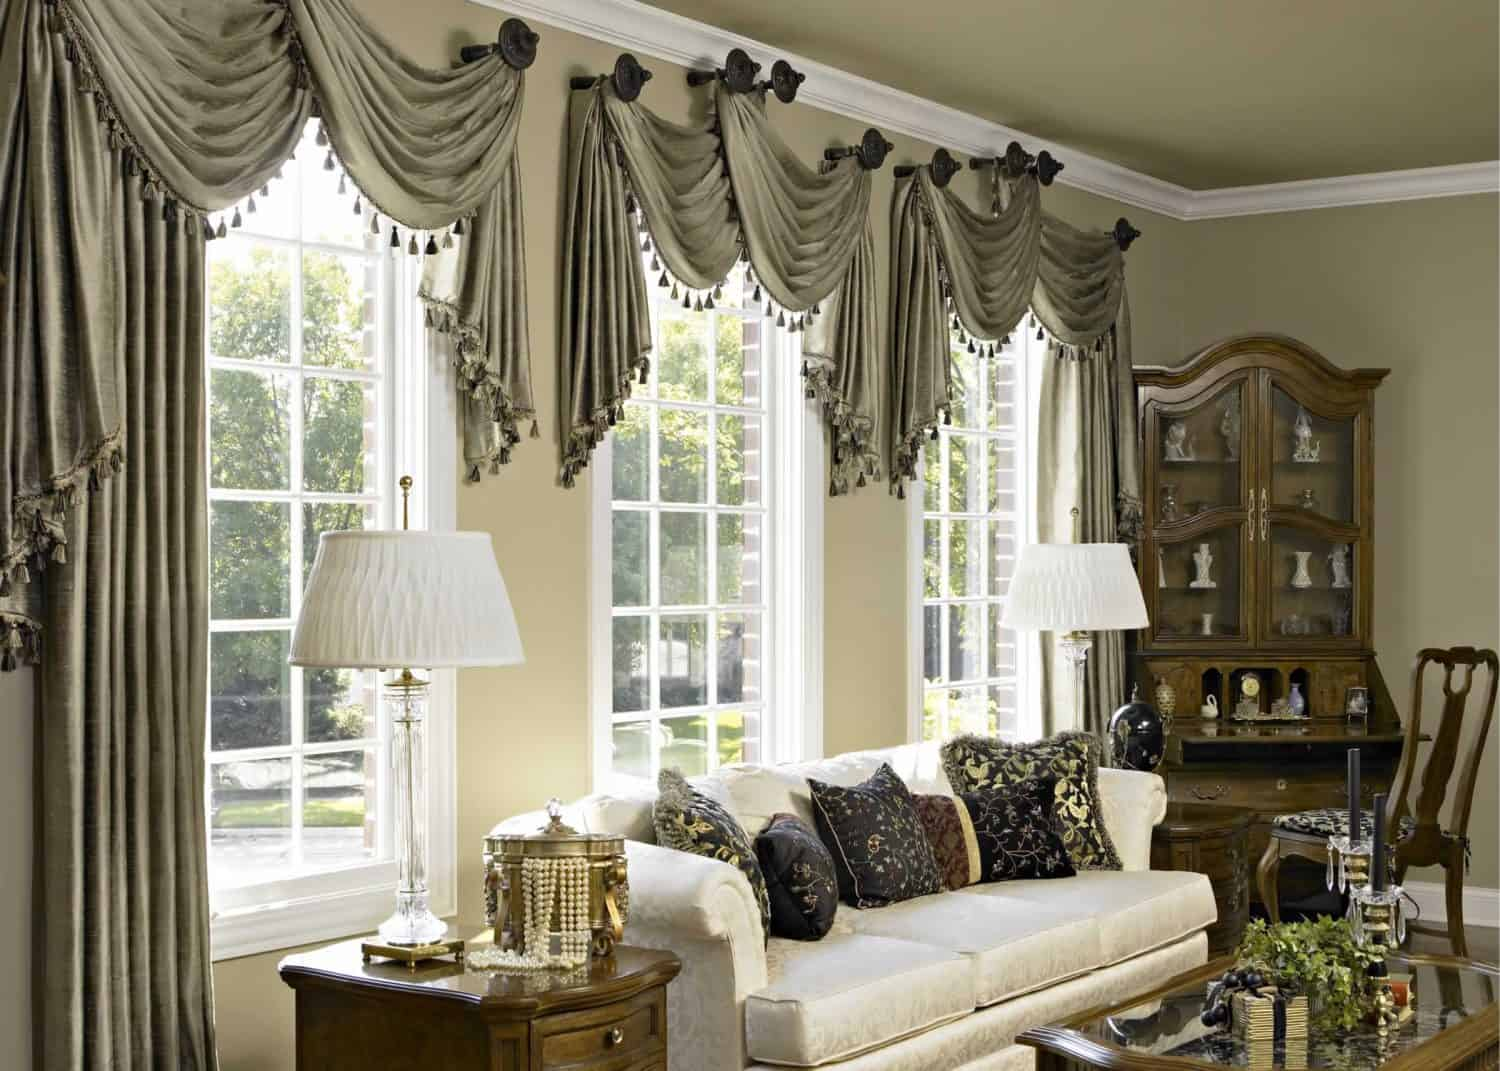 Window Treatment Ideas and The curtain color ideas for living room windows